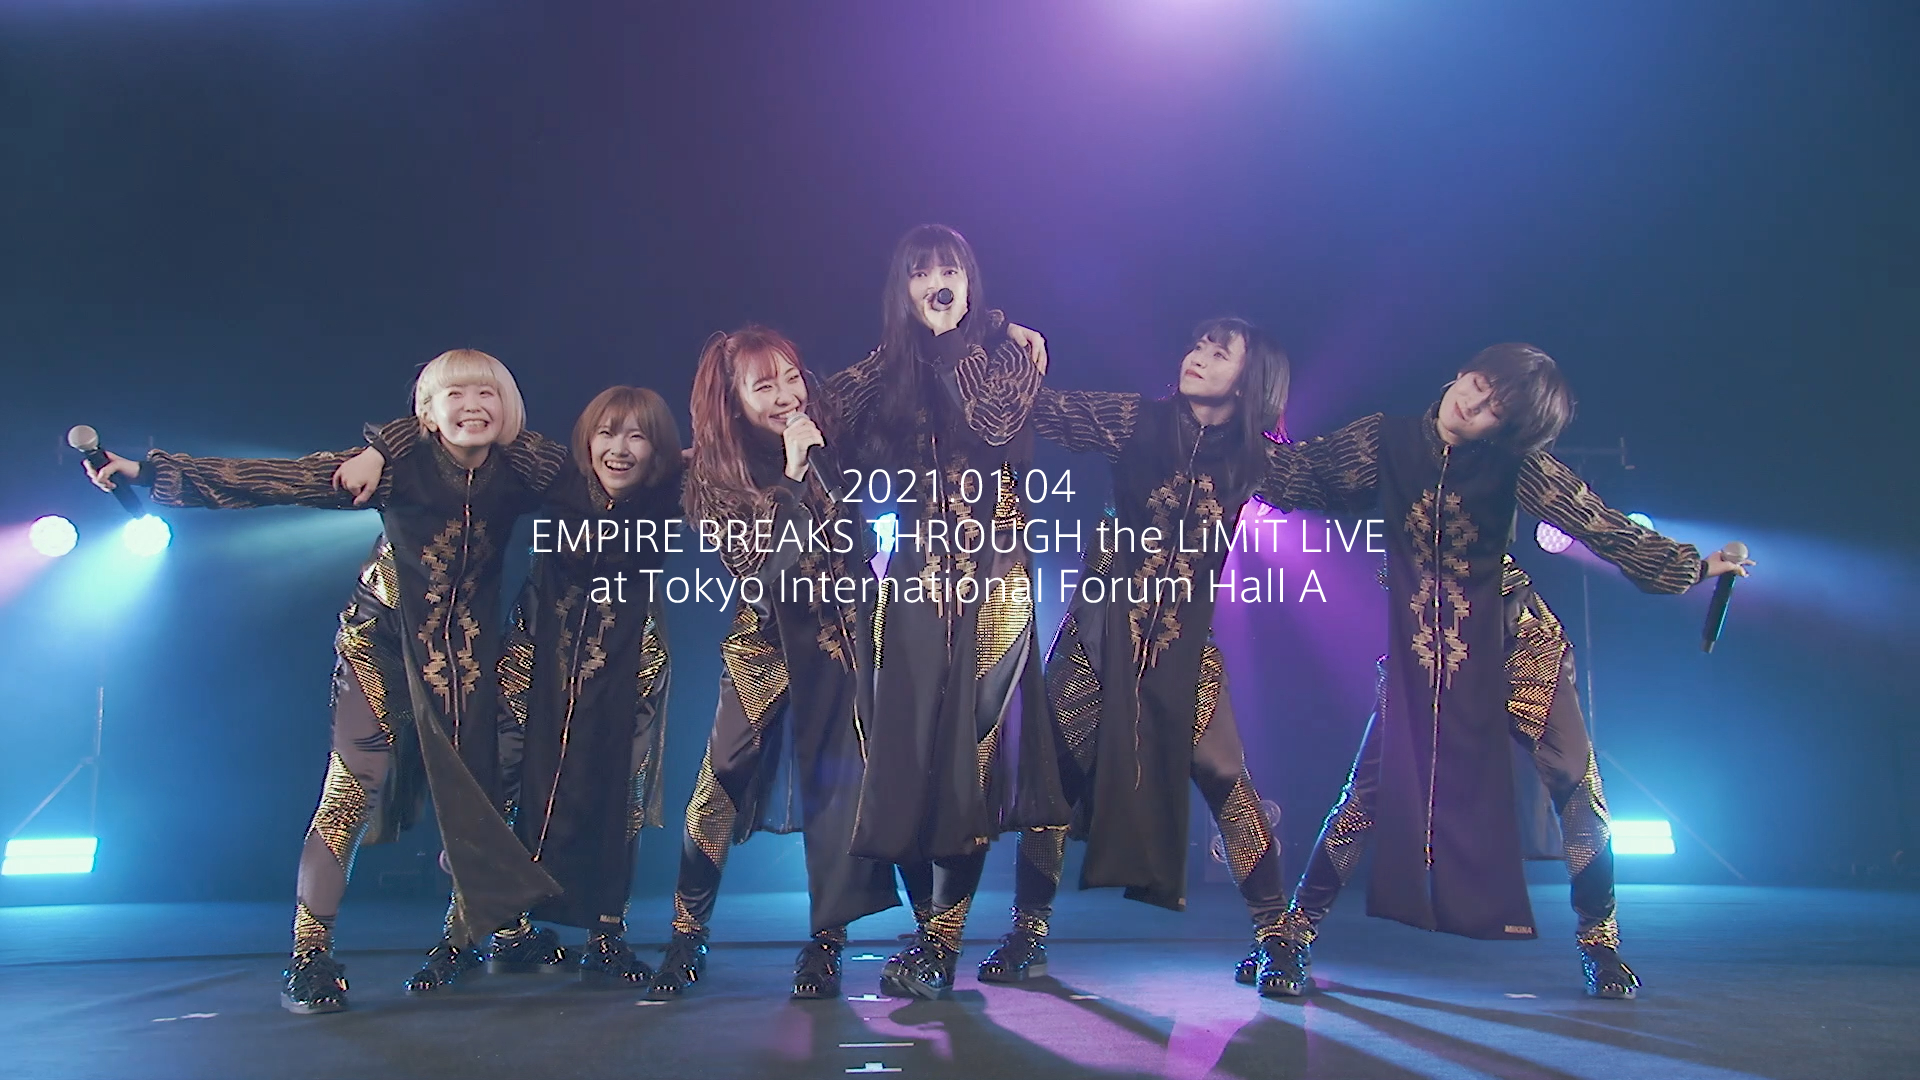 『EMPiRE BREAKS THROUGH the LiMiT LiVE』より「MAD LOVE」サムネイル